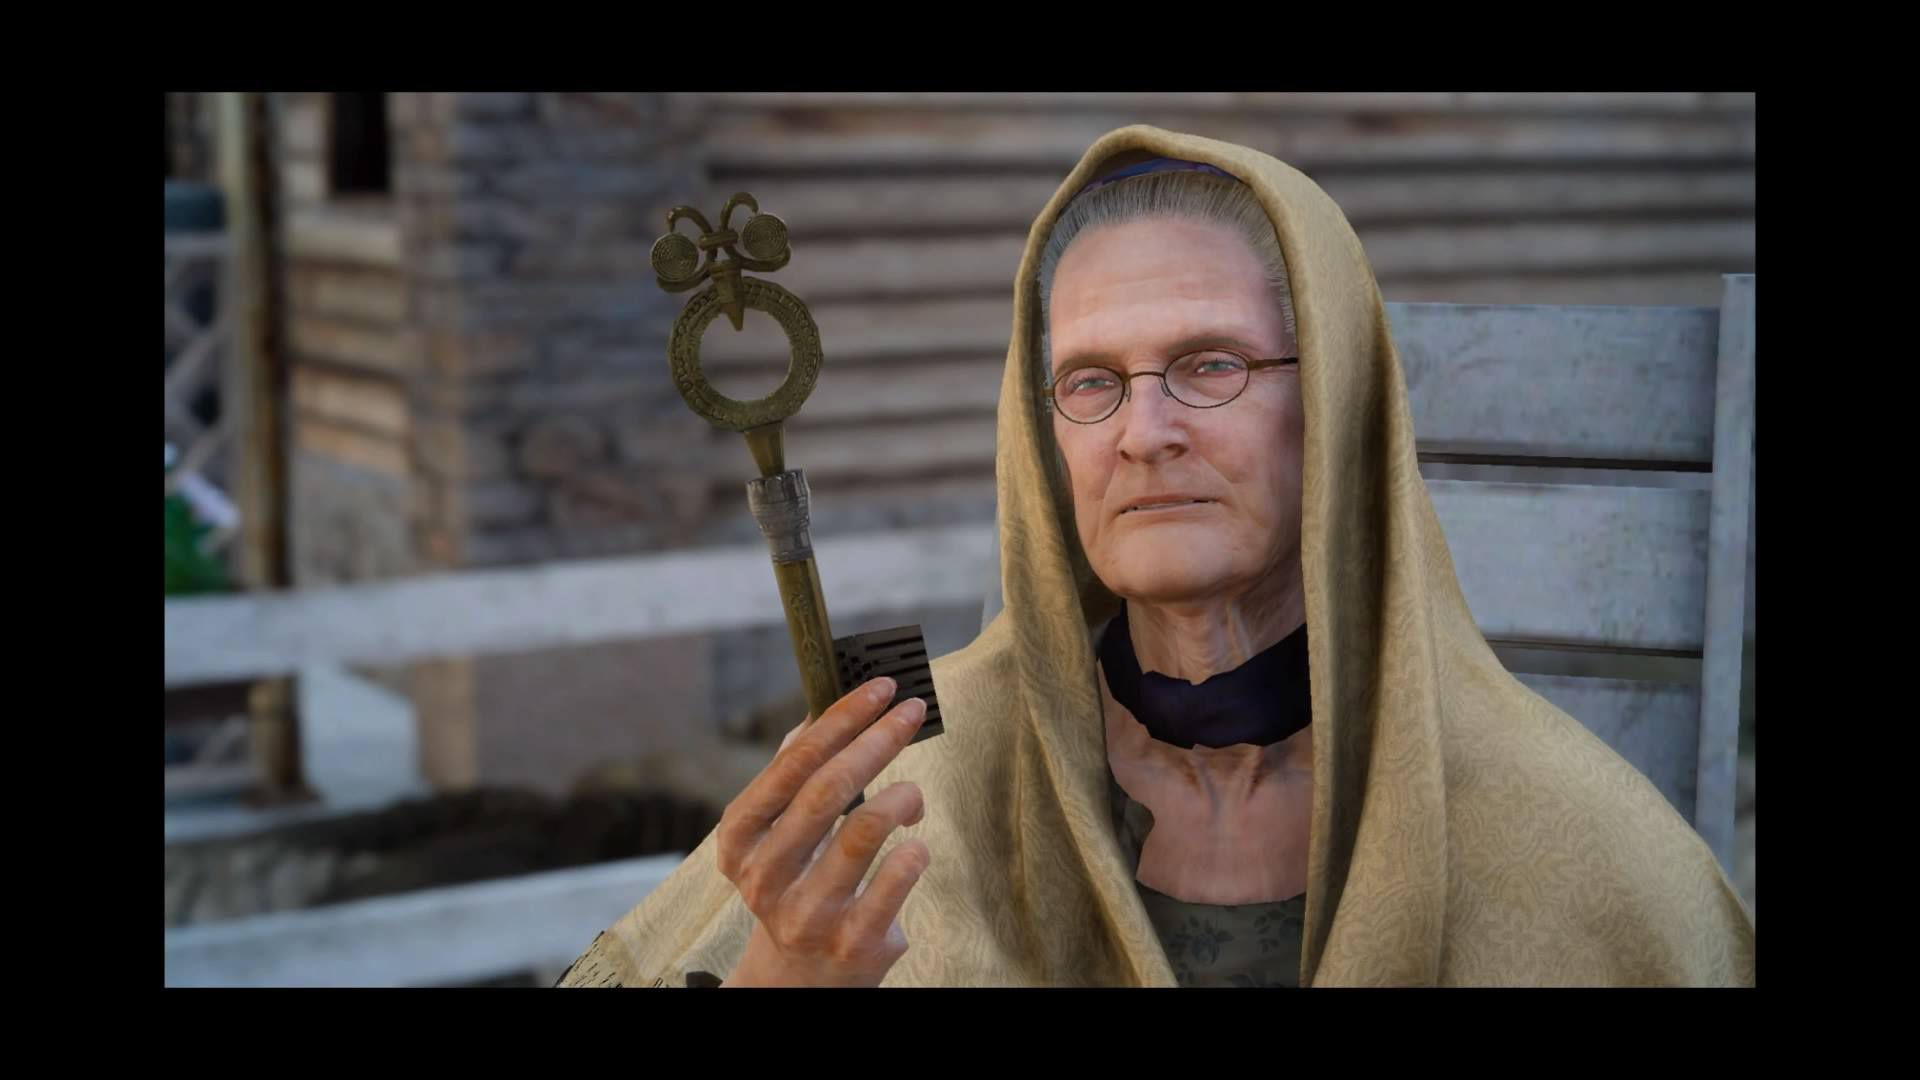 The Sealbreaker's Key is needed to access the secret dungeons in FFXV.